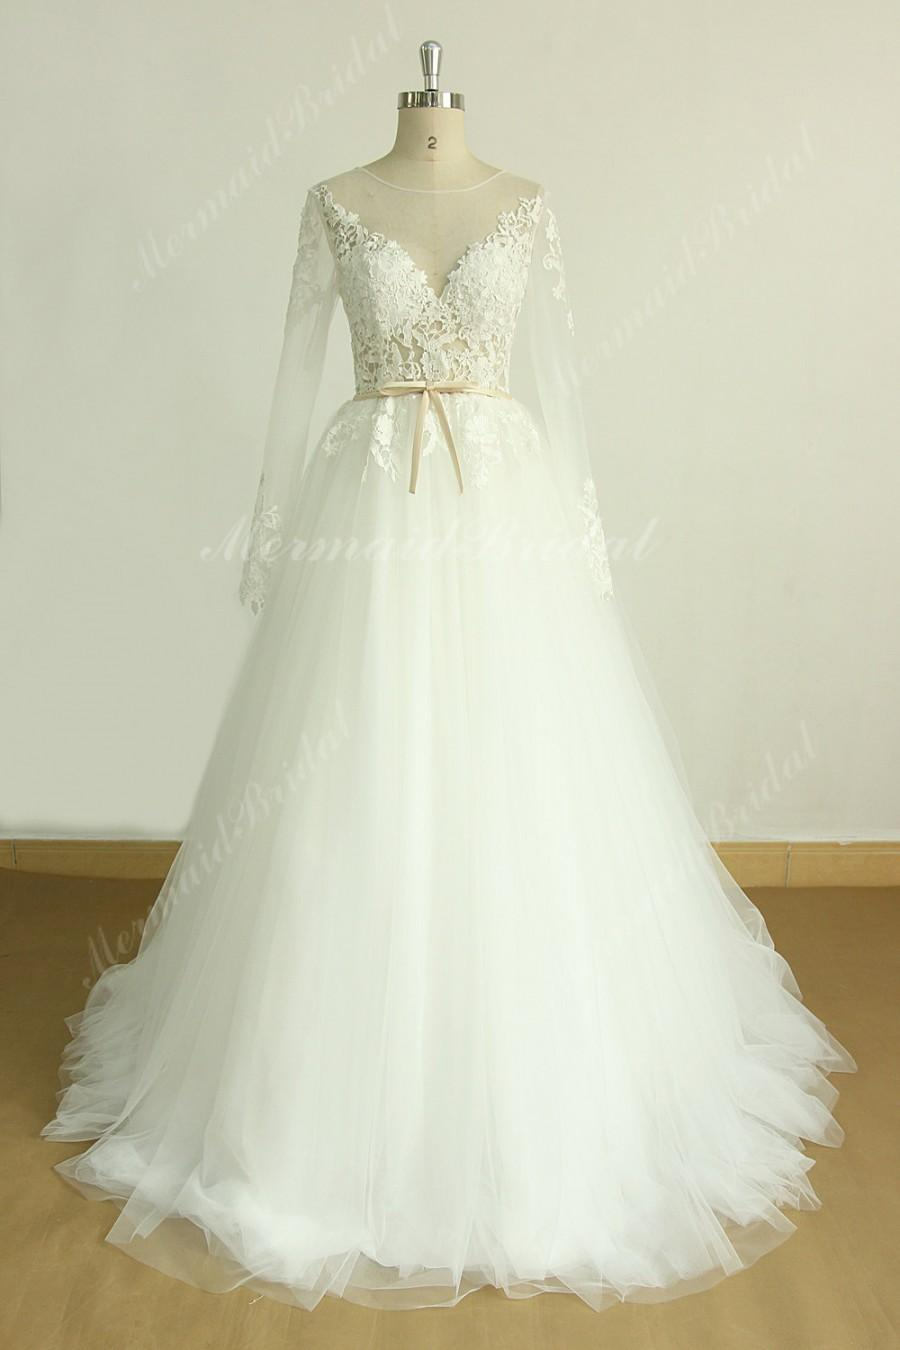 Wedding - Romantic ivory a line lace wedding dress with removable train and long sleeves